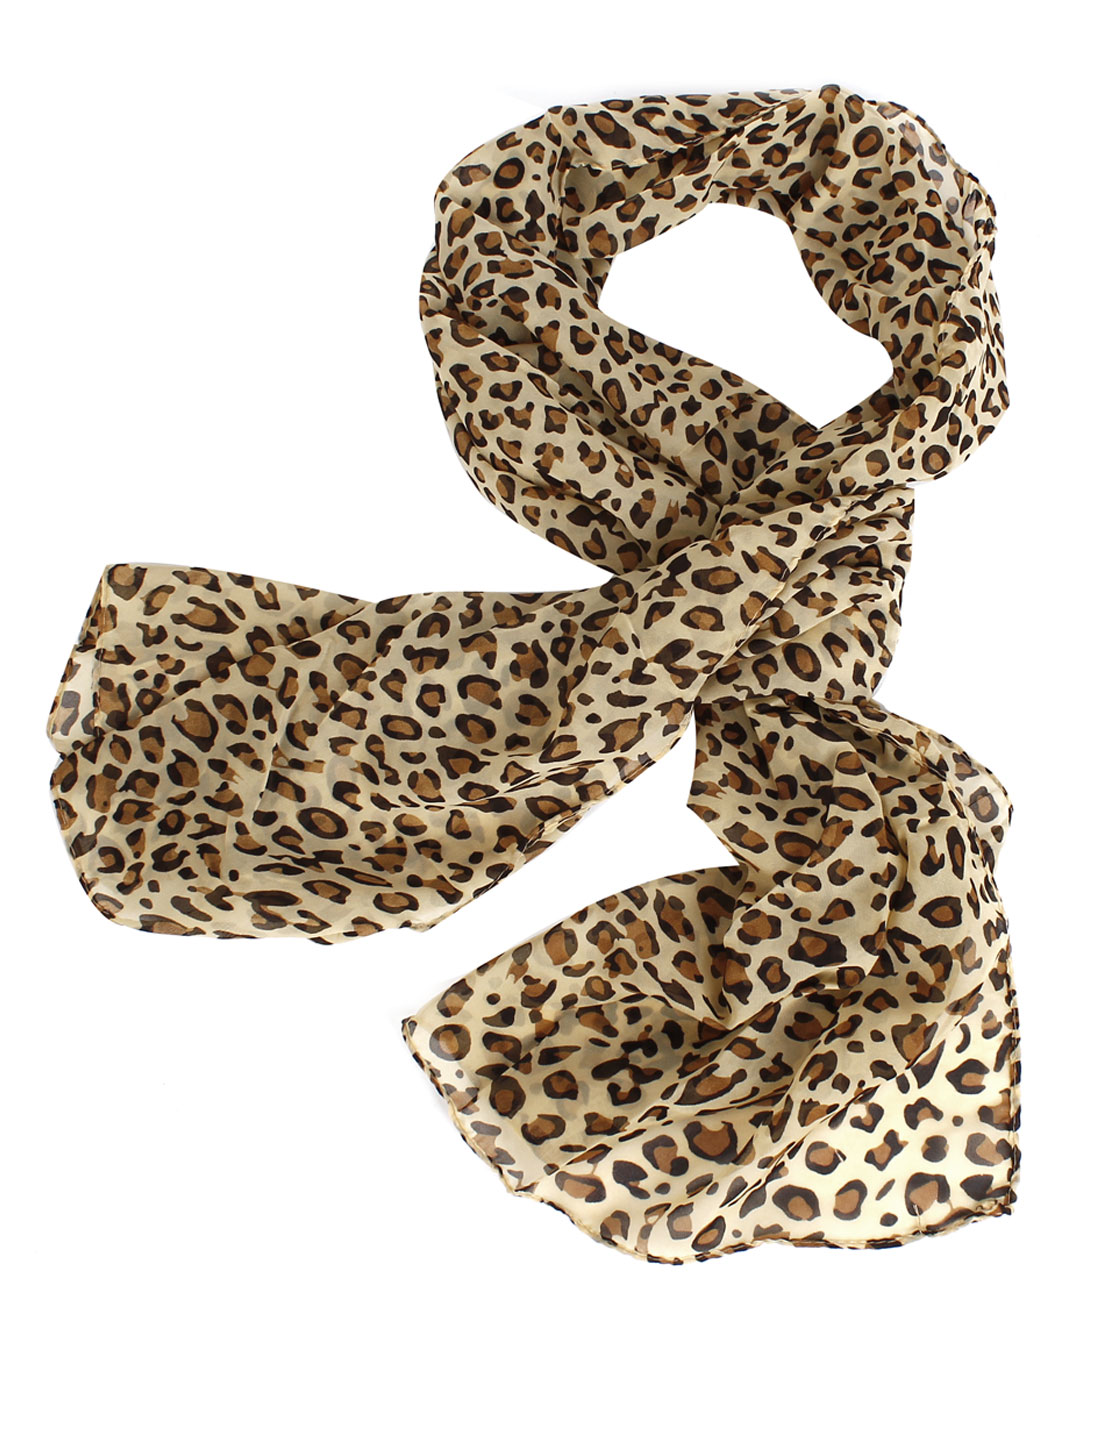 Soft Chiffon Leopard Printted Long Scarf Shawl Beige Black Brown